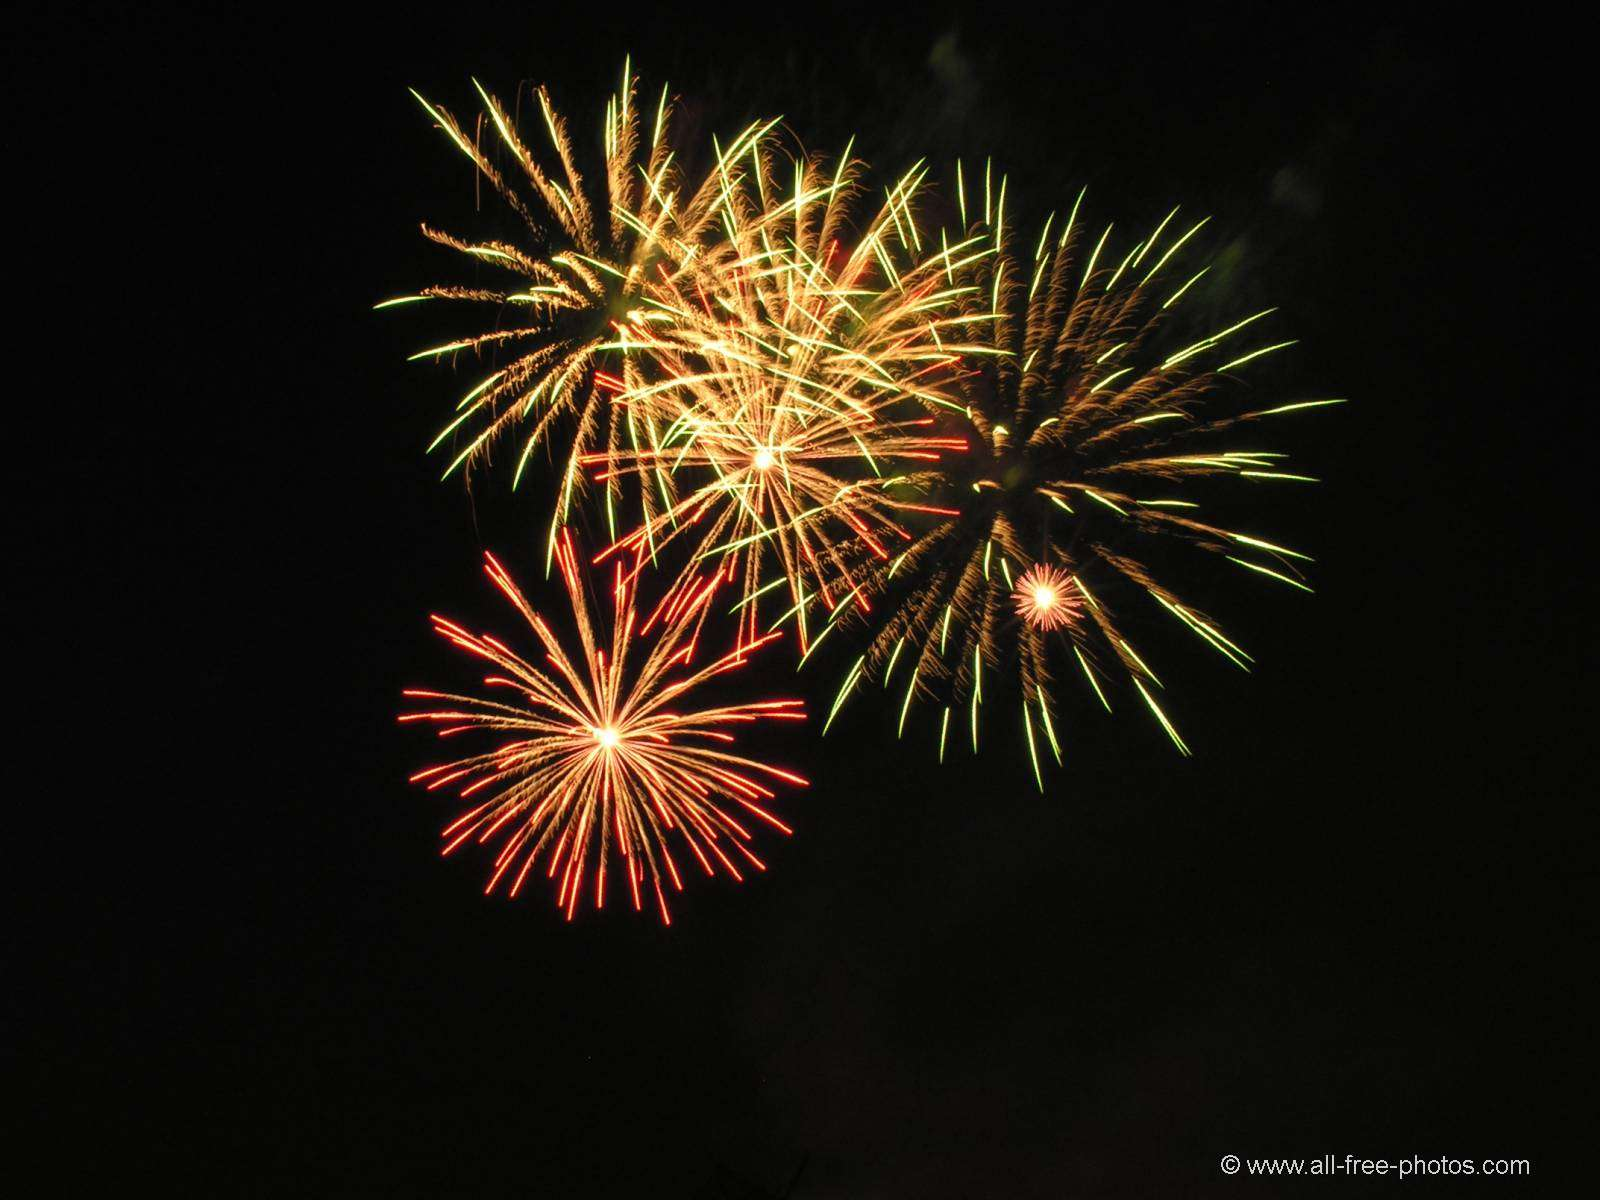 Foto: Fuegos Artificiales